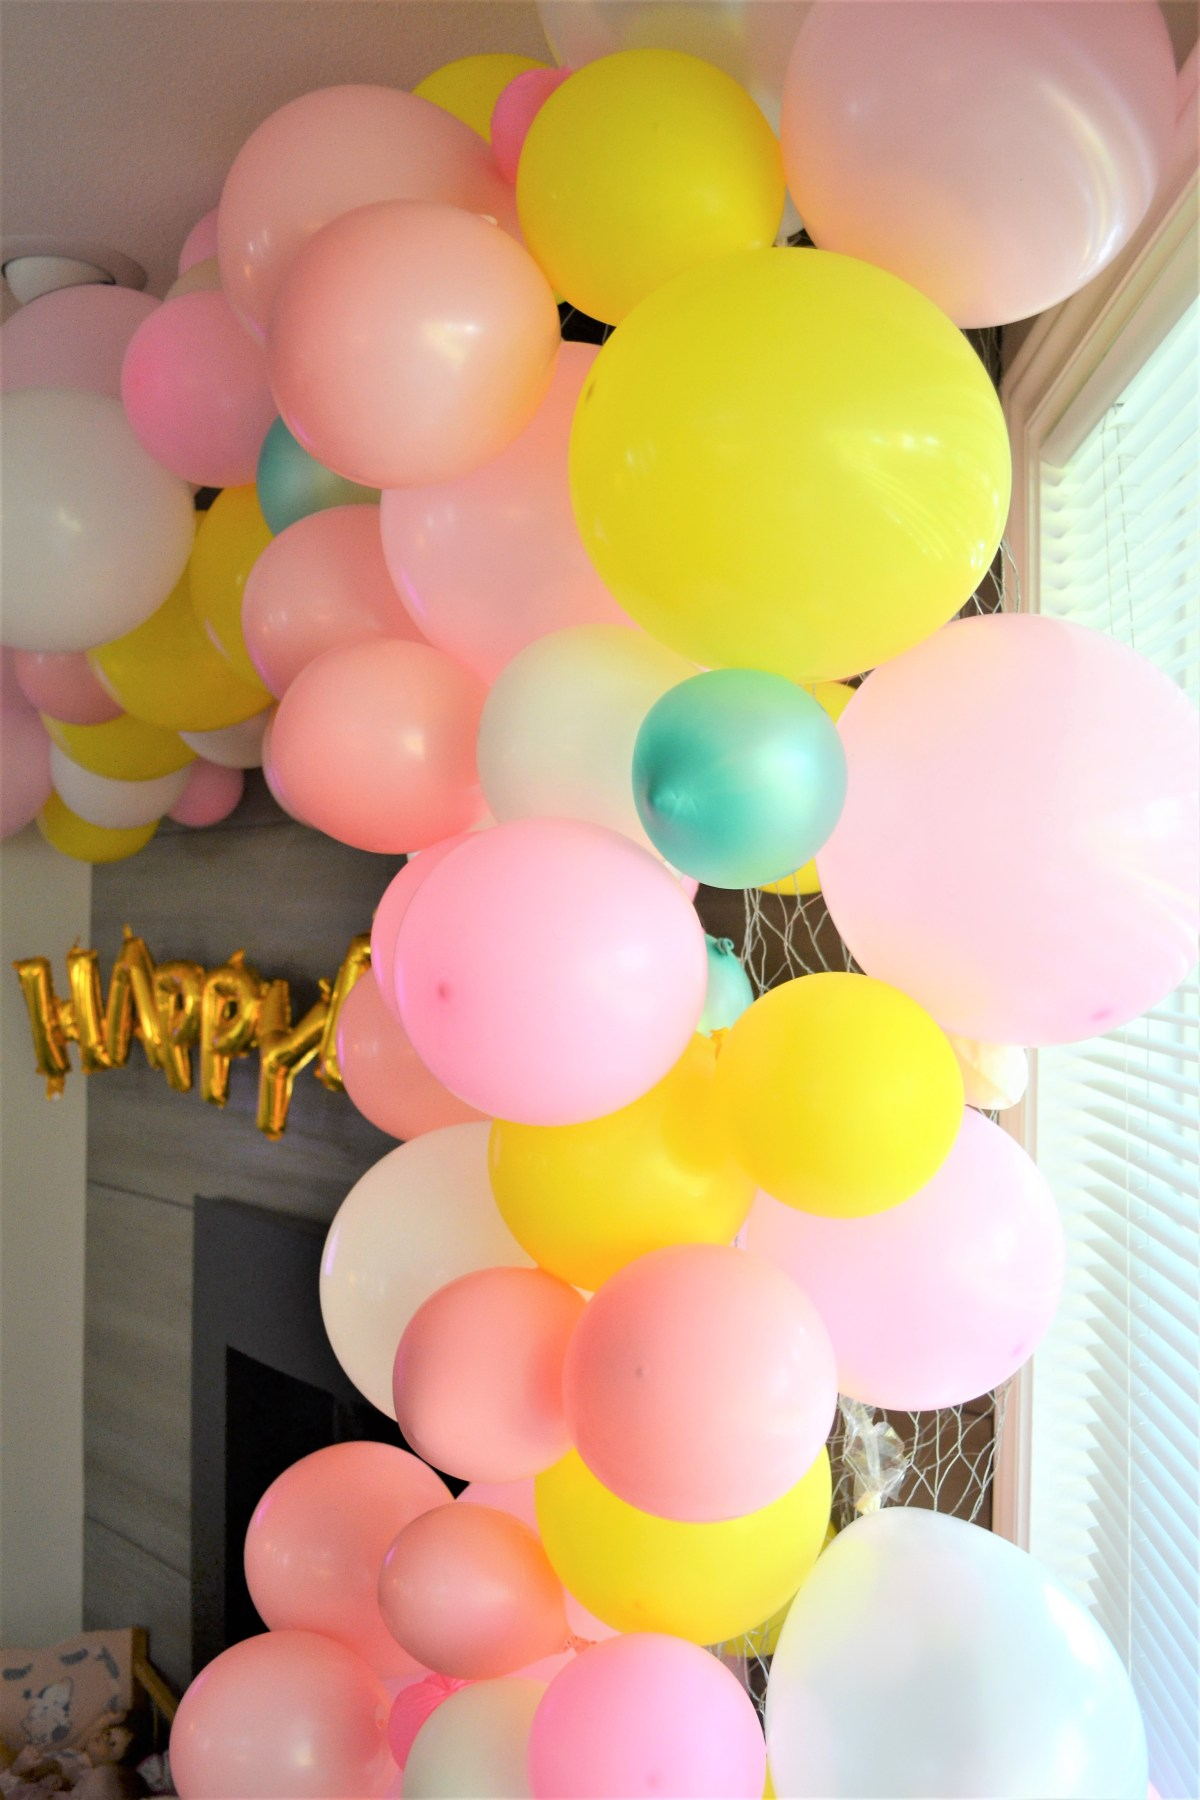 Balloon Arch Tutorial! - find all the holes